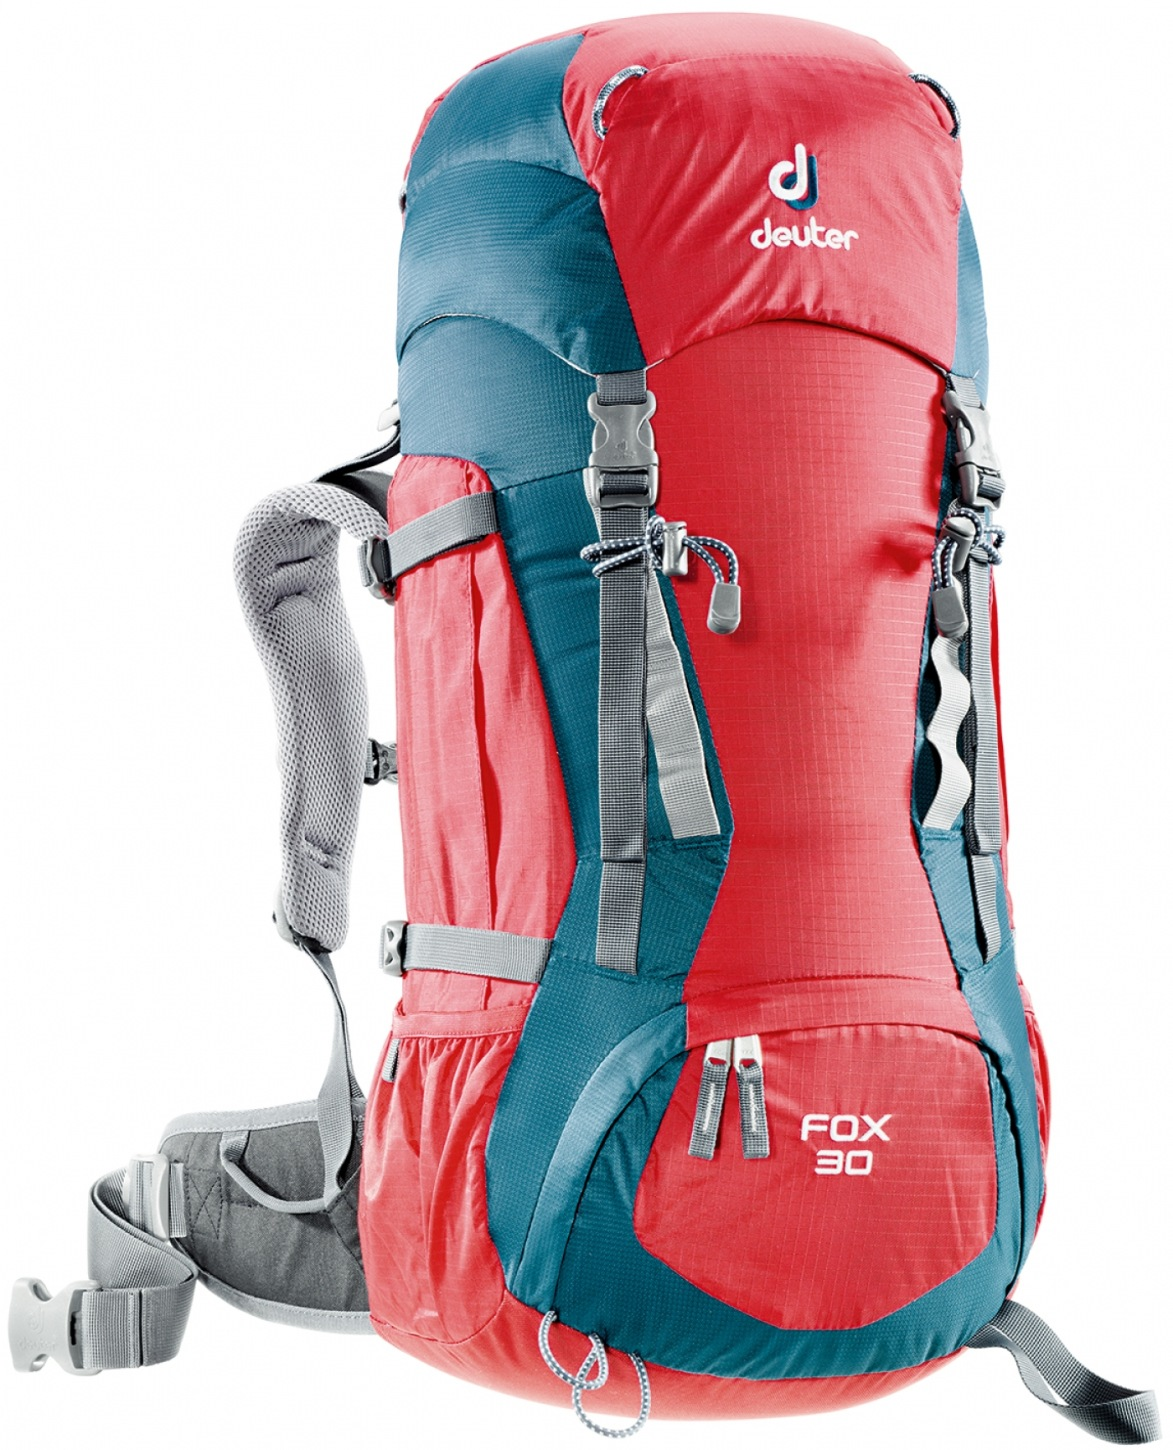 Deuter Fox 30 fire-arctic-30